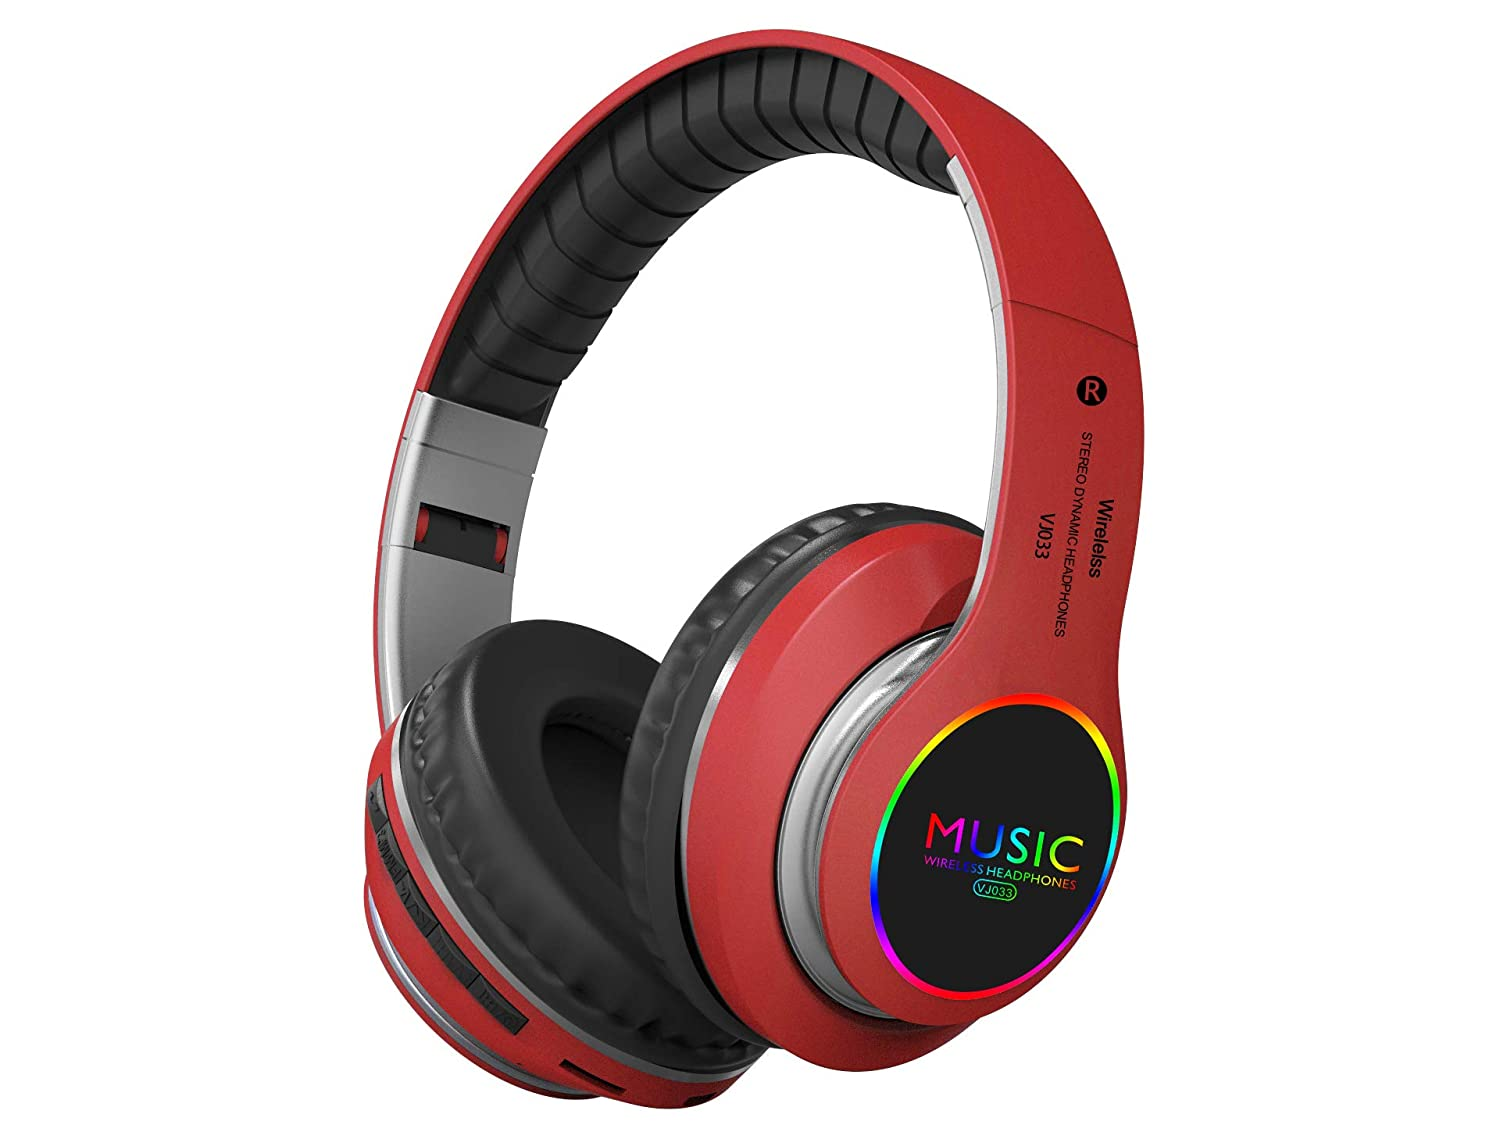 Rechargeable Bluetooth Headphones Over Ear, Wireless, Foldable, with/Built-in Mic, Comfortable Protein Earpads, Support TF Card and FM, Could Connect to MP3/IPAD/TV/Mobile (Red)